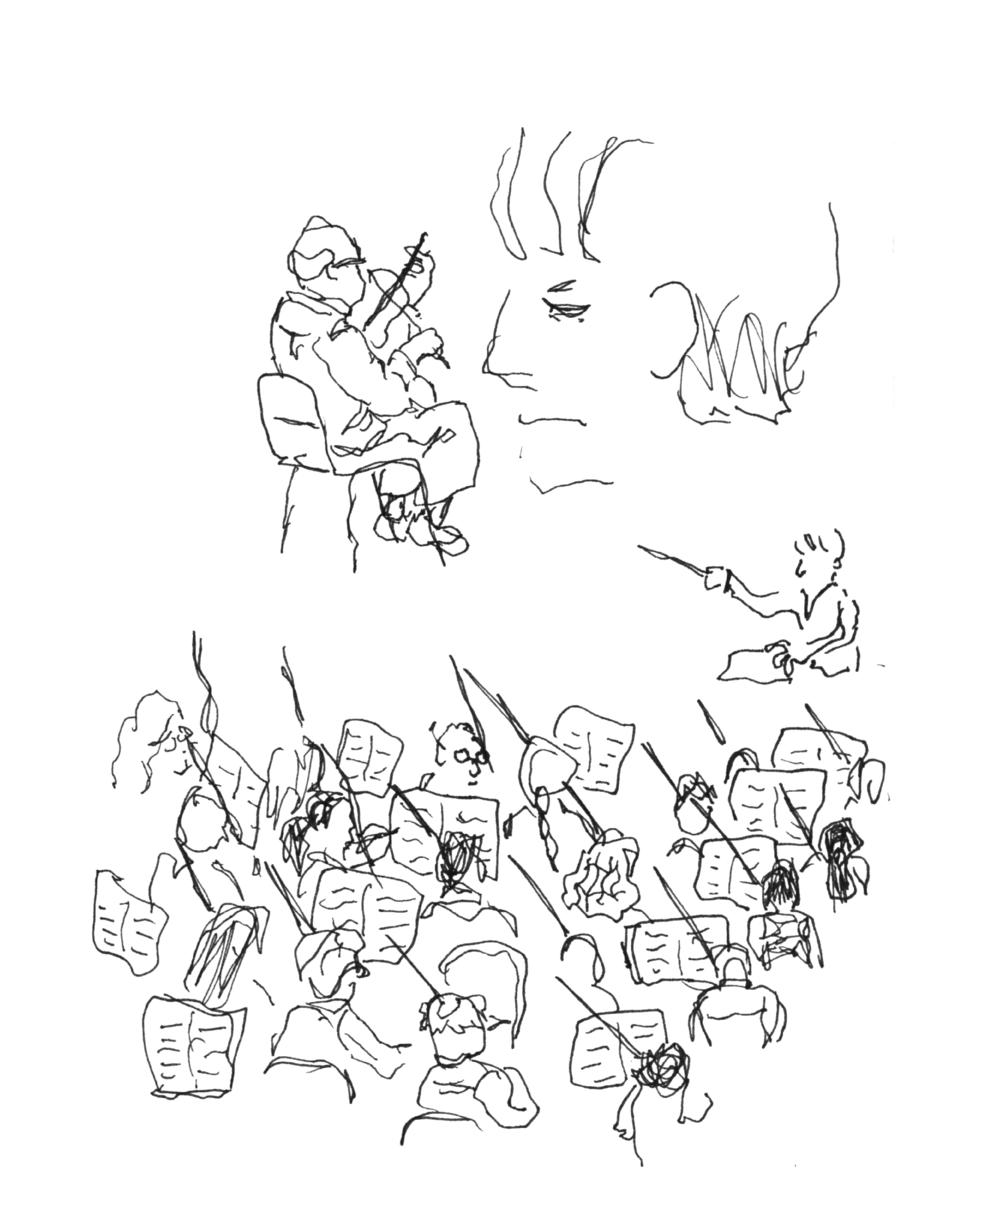 orch3.png